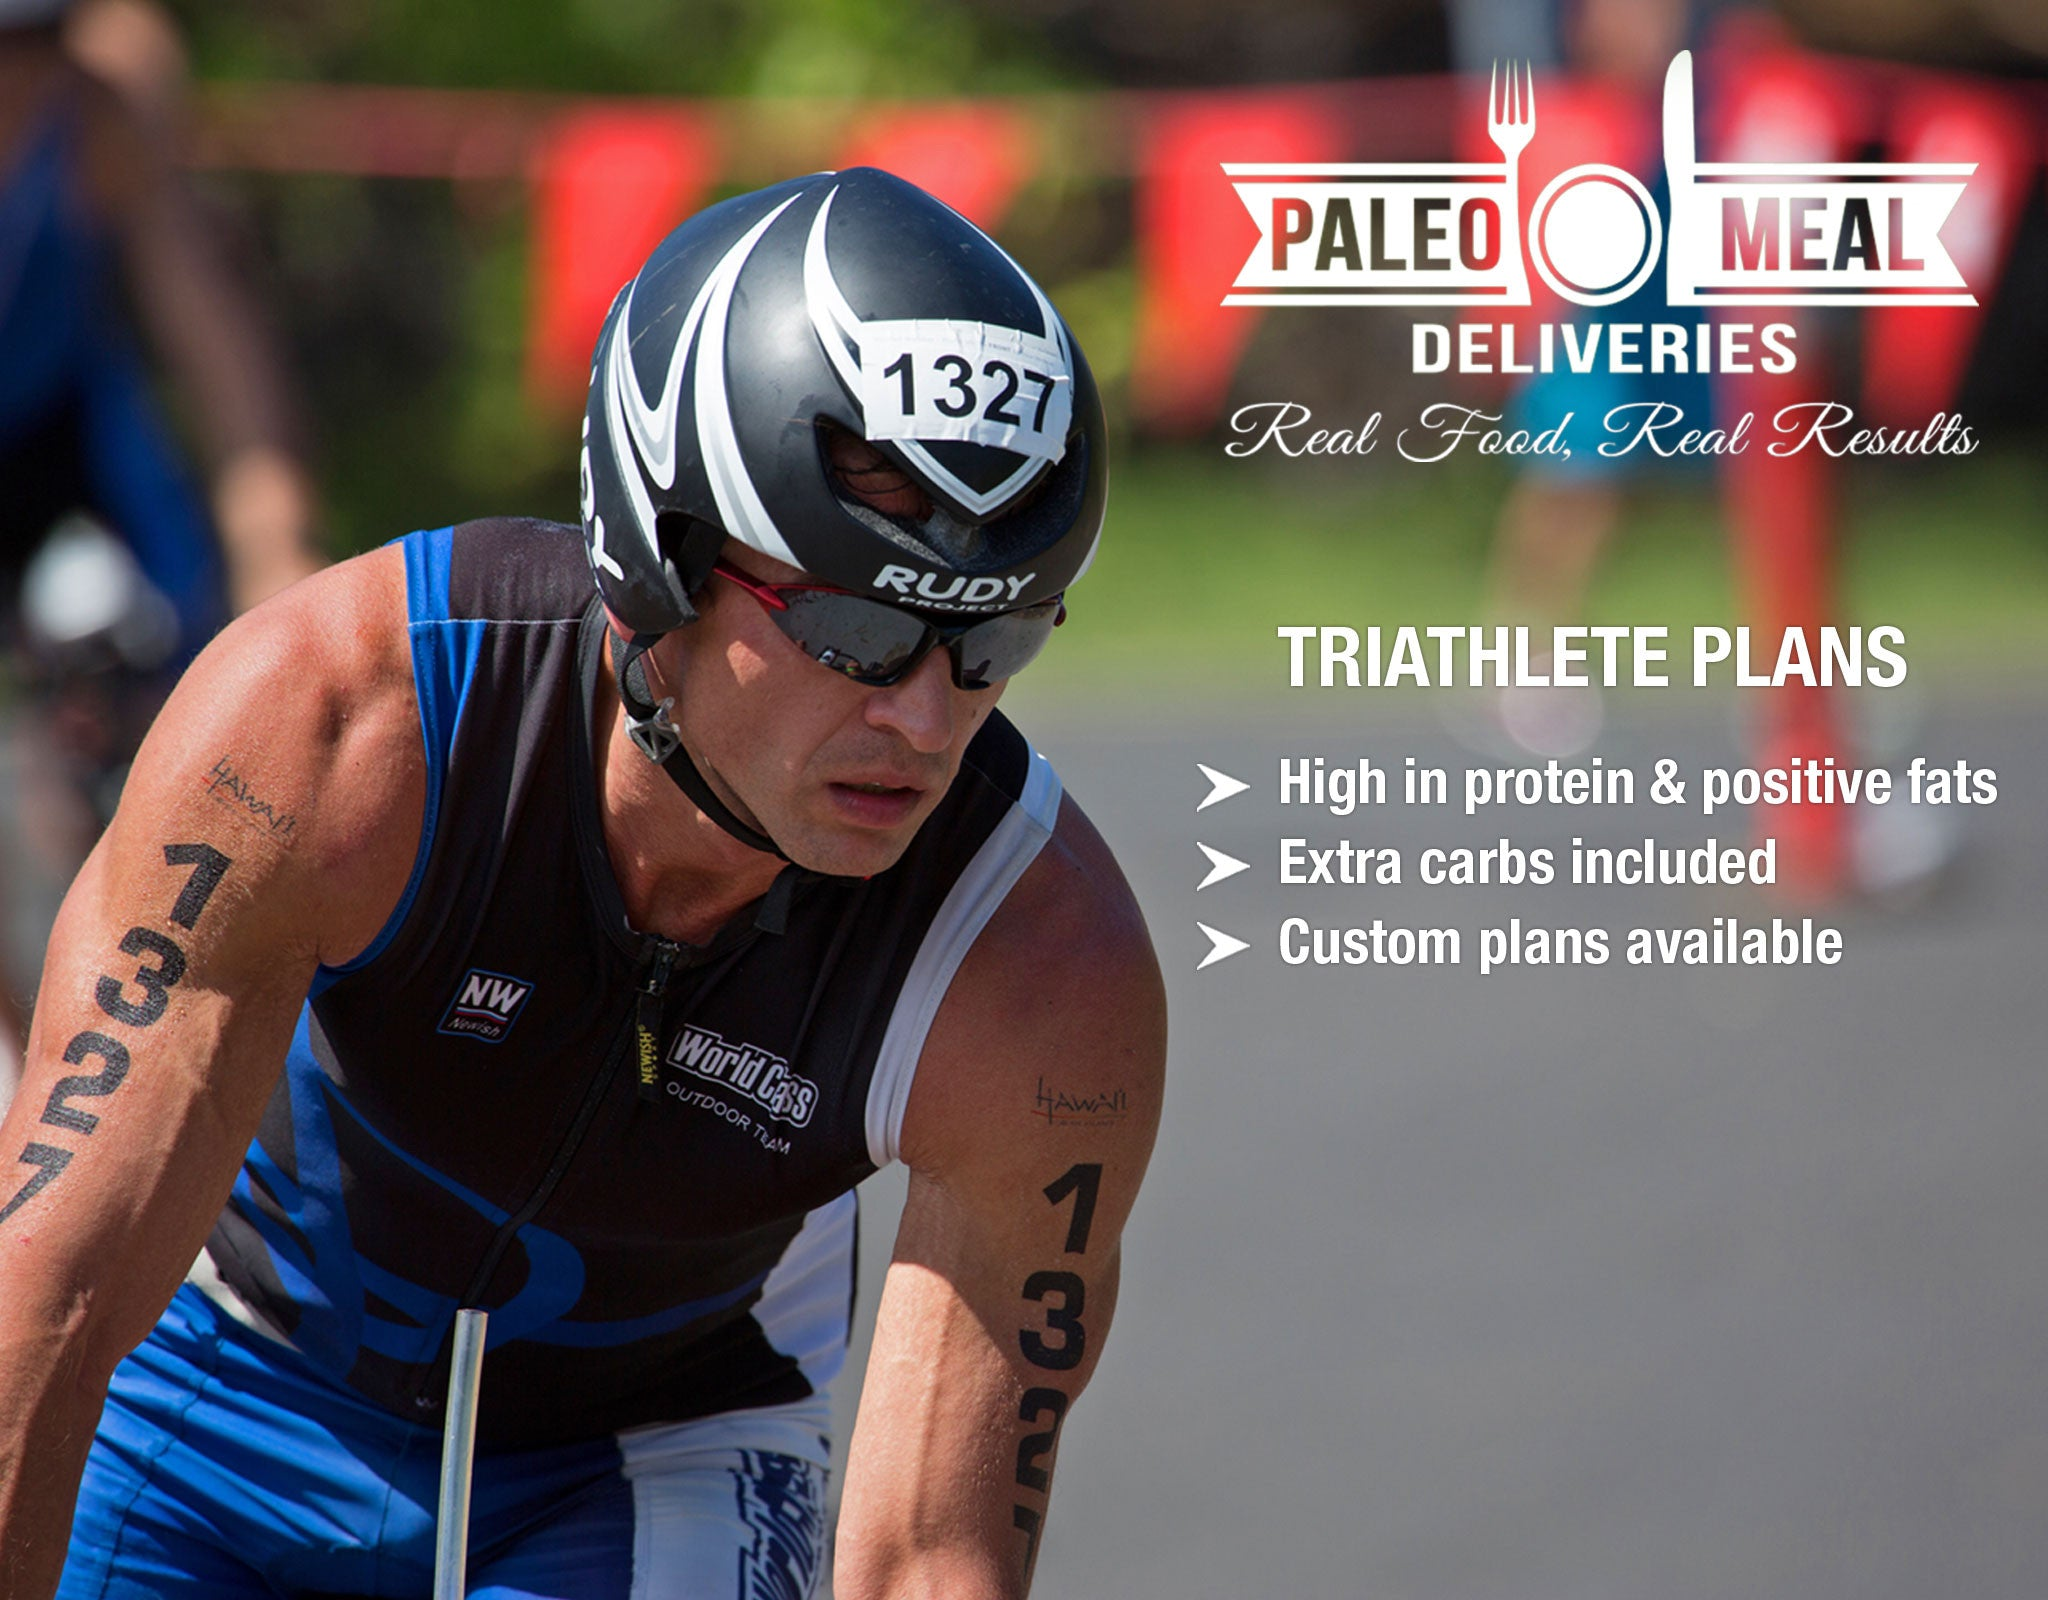 Triathlon ireland meal plans